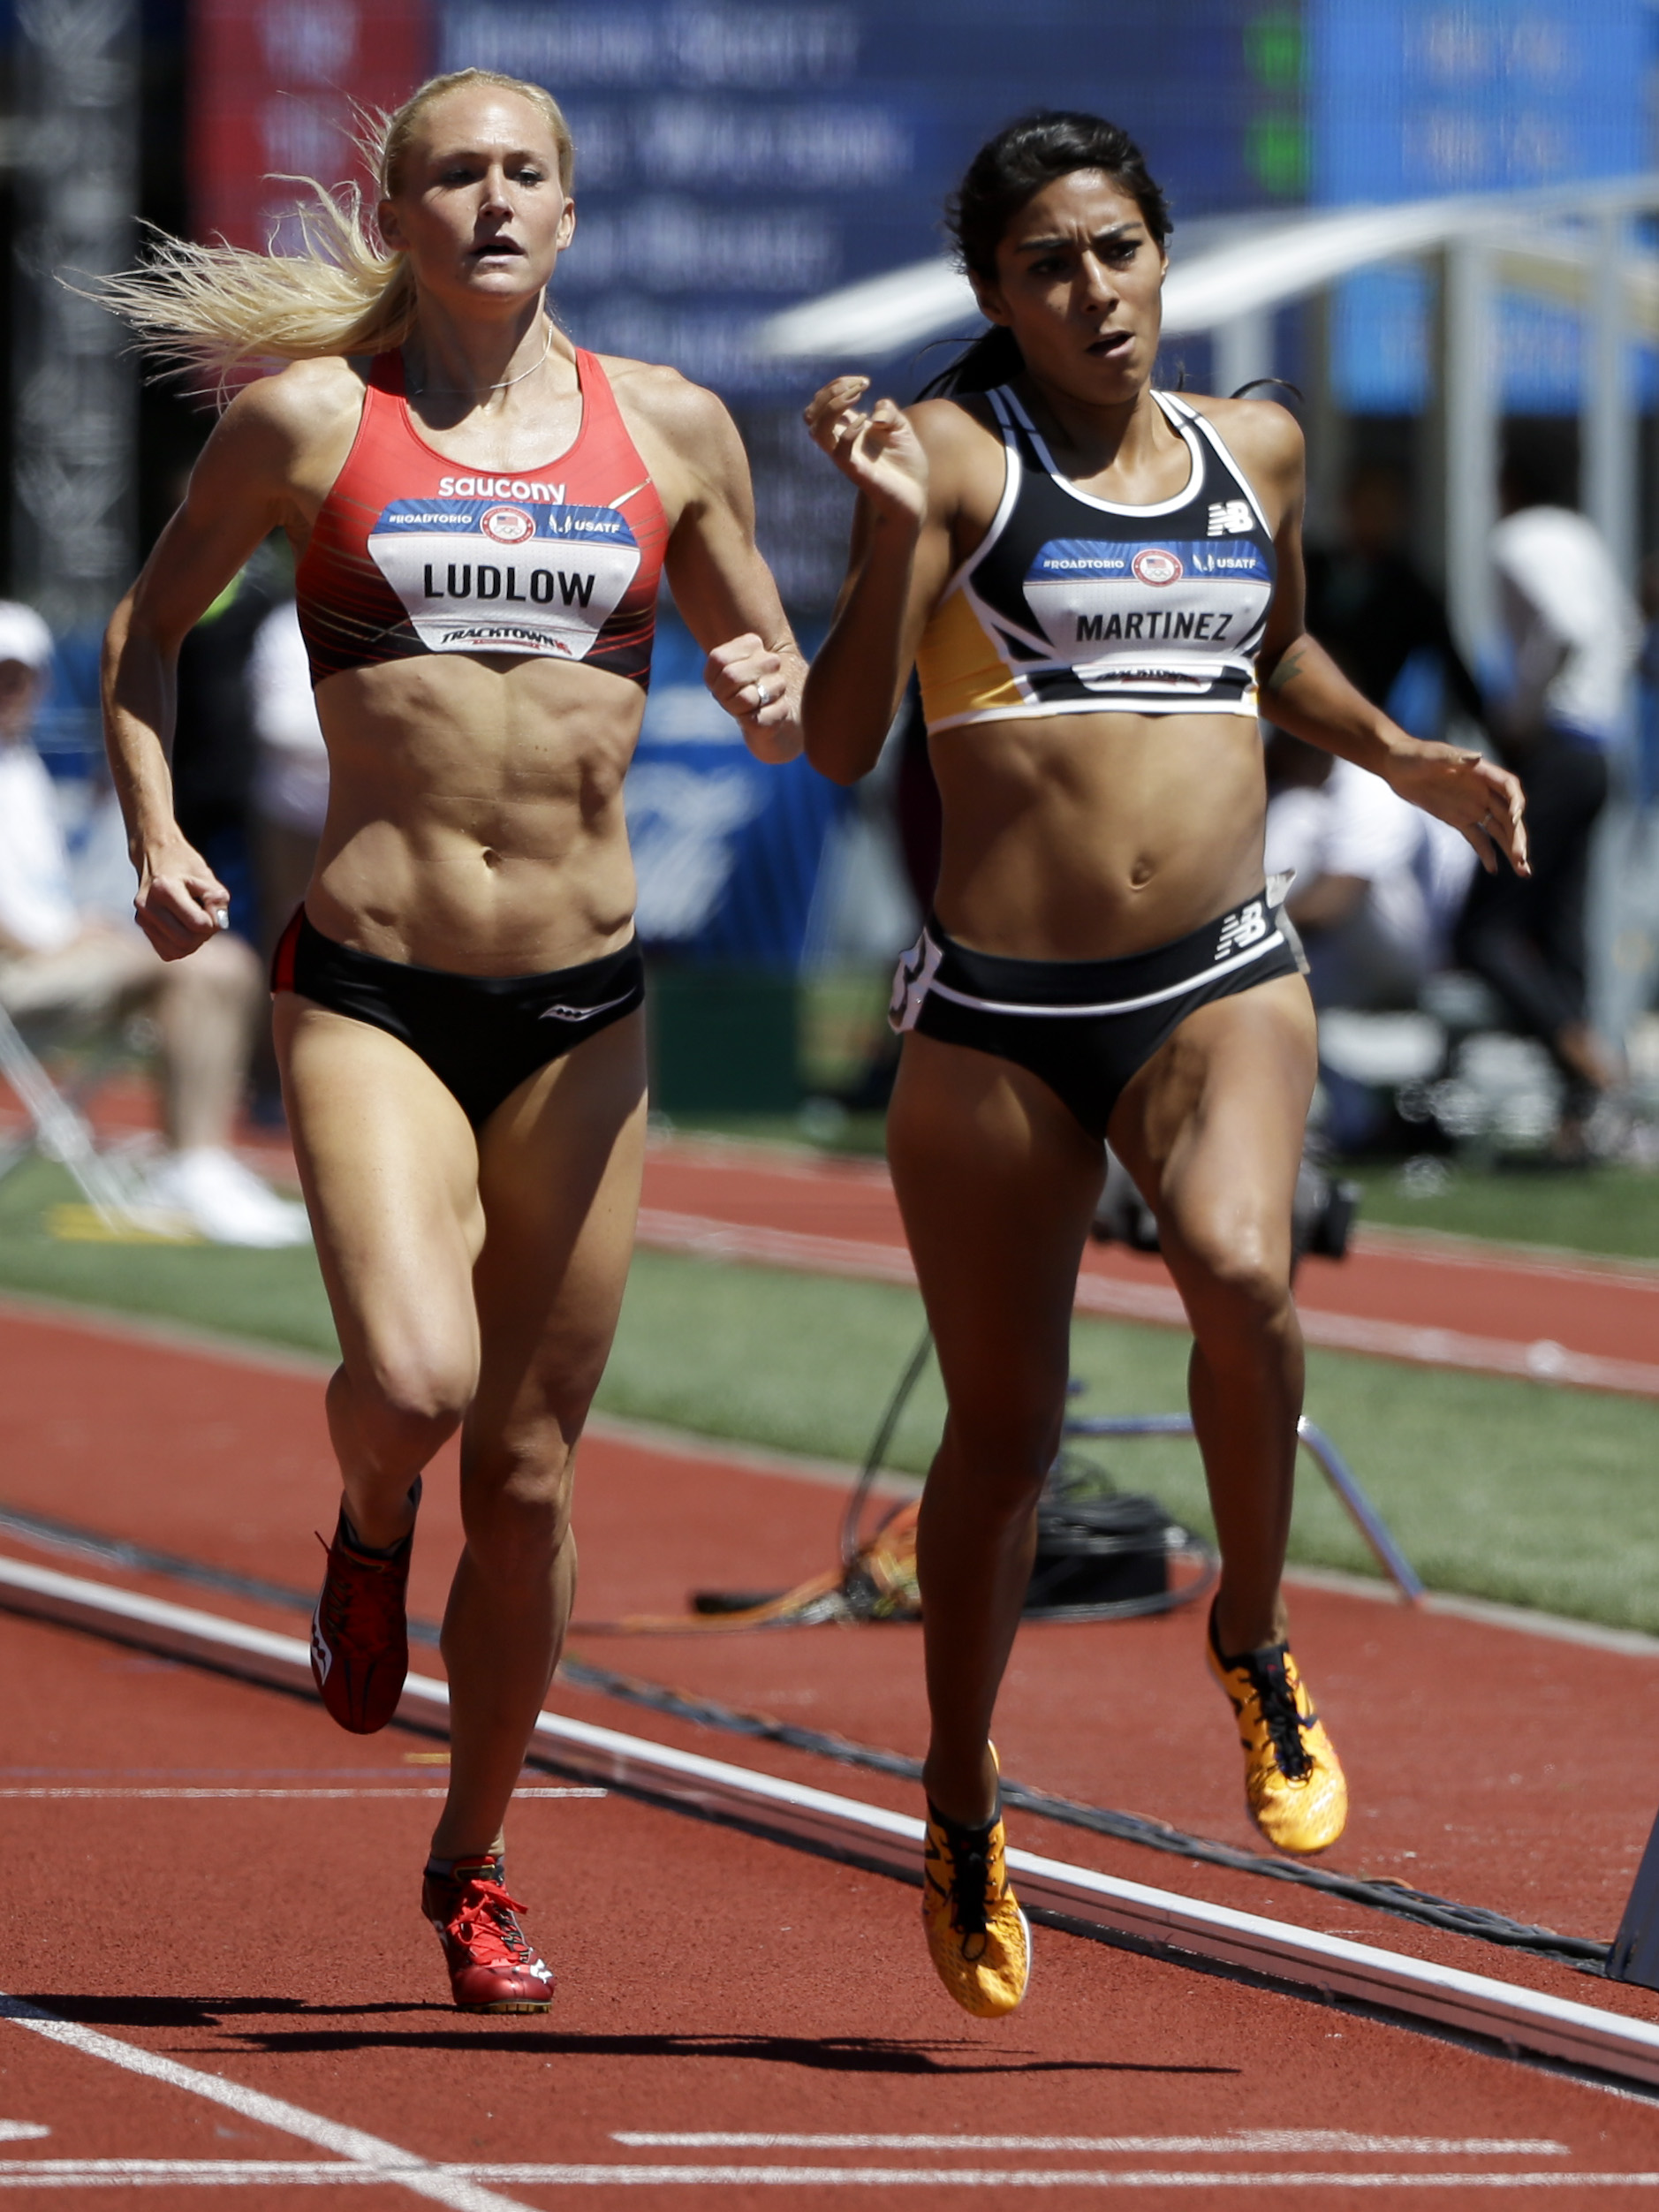 Brenda Martinez, right, wins her heat past Molly Ludlow during qualifying for women's 800-meter run at the U.S. Olympic Track and Field Trials, Saturday, July 2, 2016, in Eugene Ore. (AP Photo/Marcio Jose Sanchez)